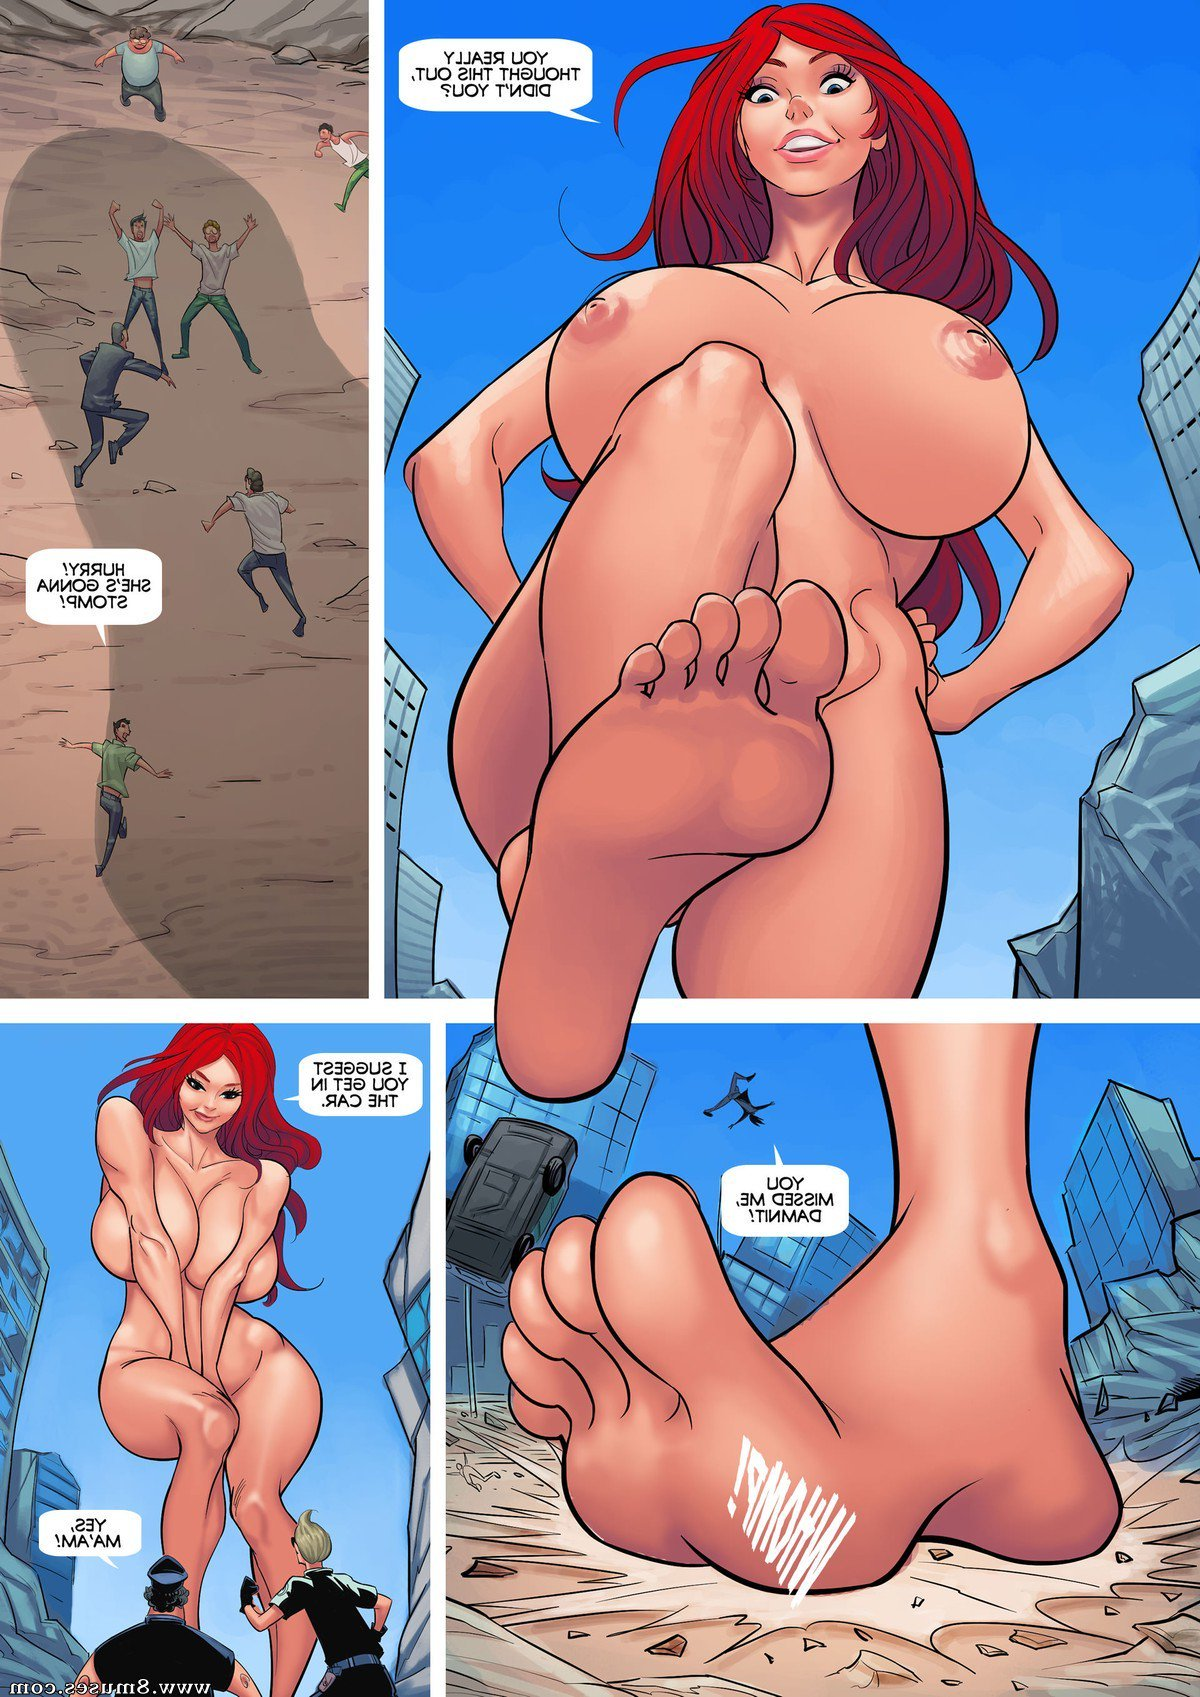 Giantess-Fan-Comics/Worst-Day-Ever/Issue-2 Worst_Day_Ever_-_Issue_2_5.jpg